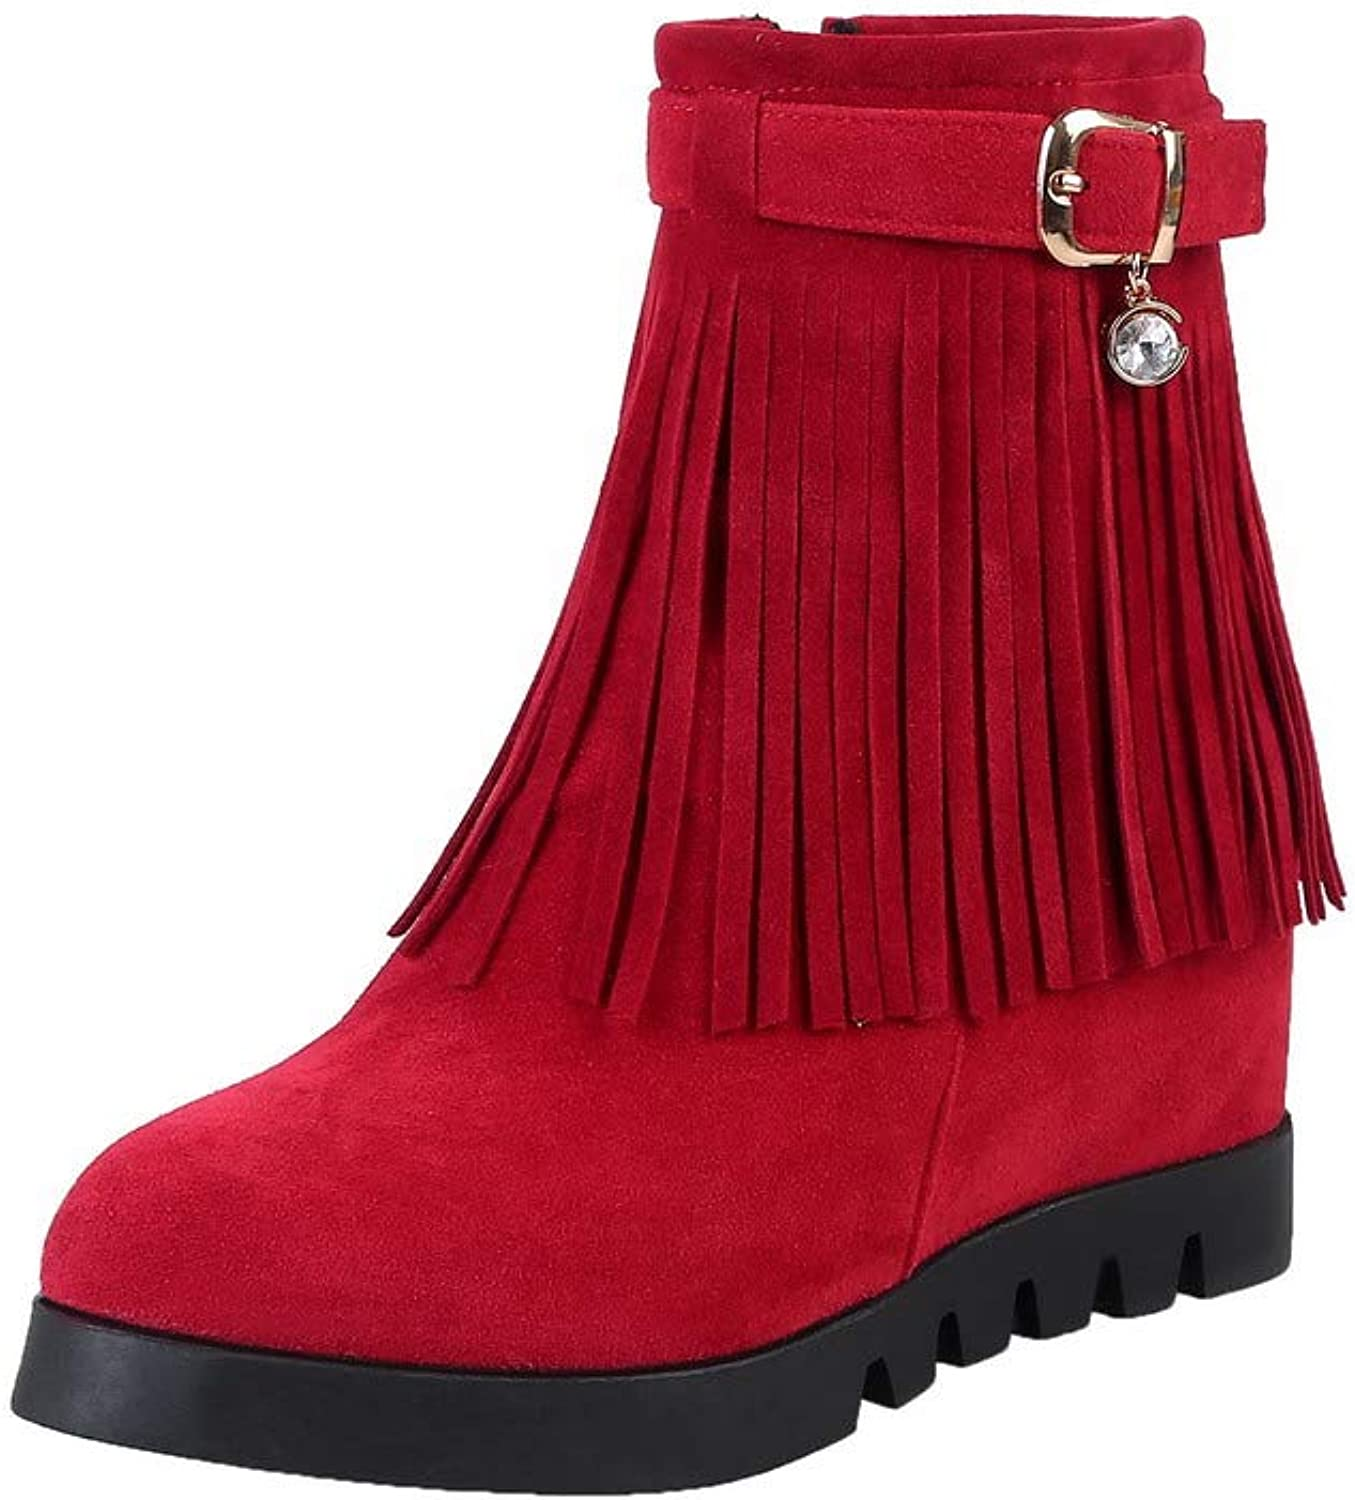 AmoonyFashion Women's Solid Frosted High-Heels Zipper Round-Toe Boots, BUSXT126987